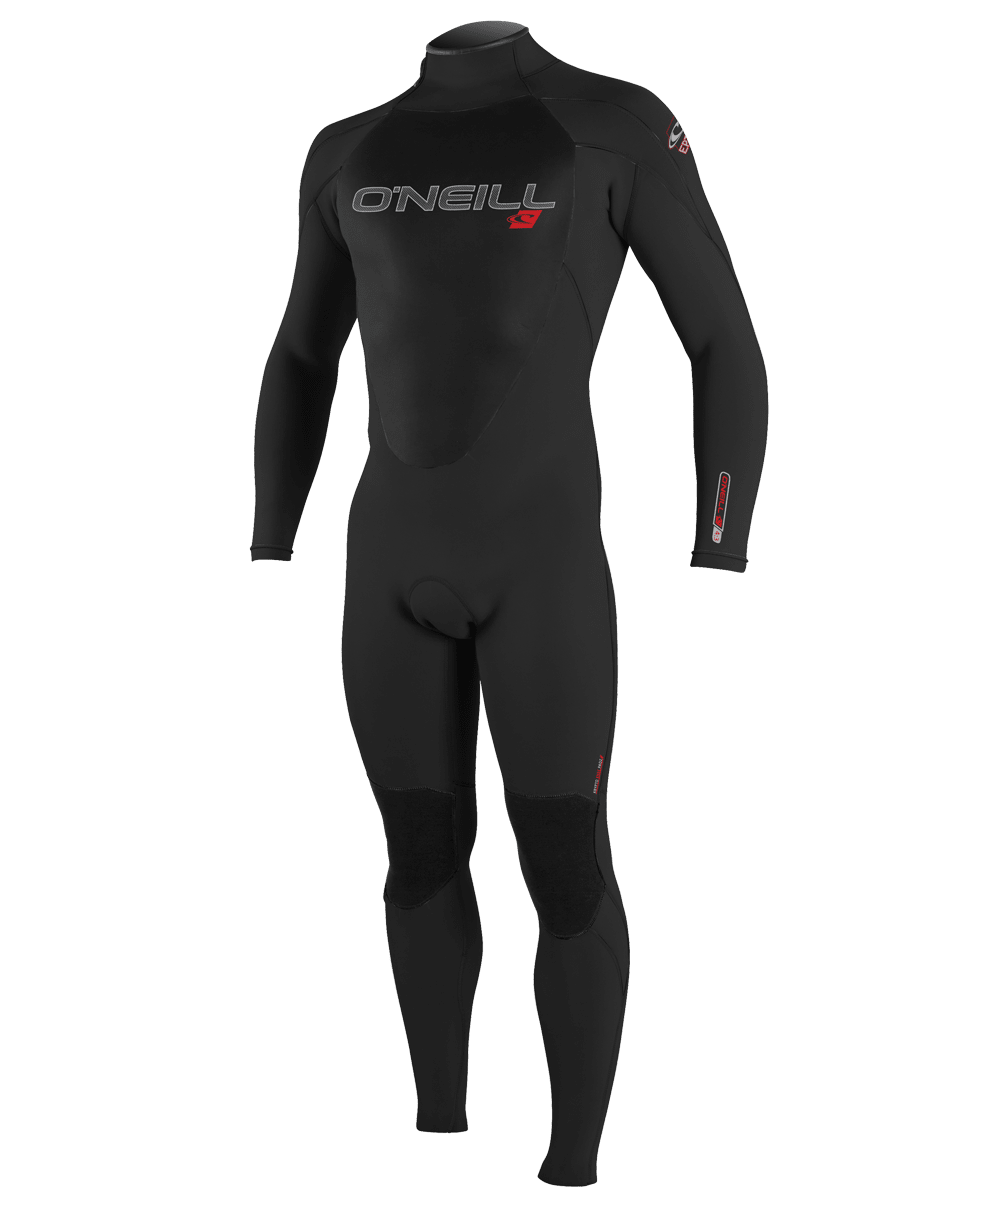 O'NEILL Men's Epic 3/2 mm Wetsuit M TALL